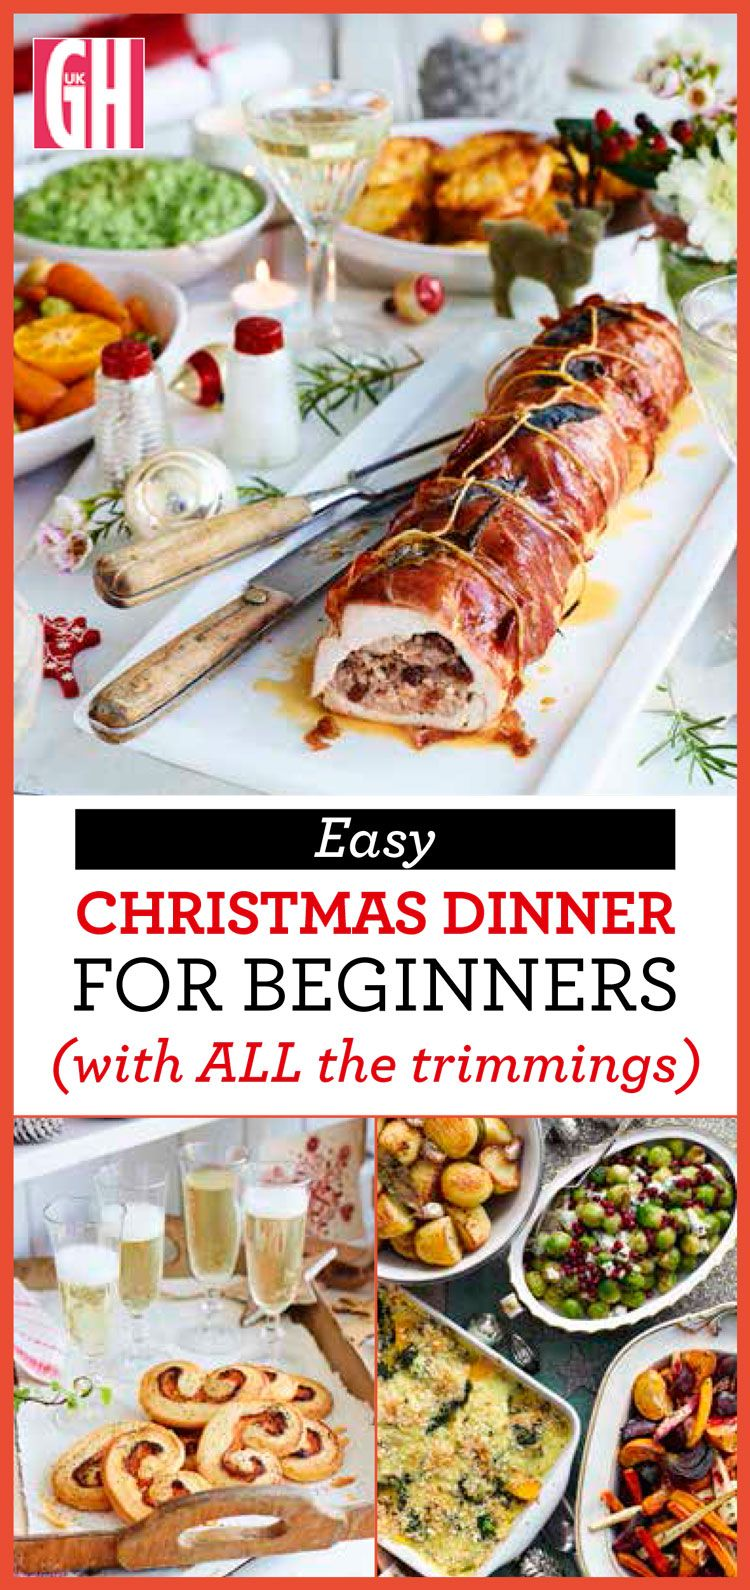 how to cook christmas dinner from an easy xmas starter recipe to turkey breast and all the trimmings plus a ridiculously easy festive dessert - Simple Christmas Dinner